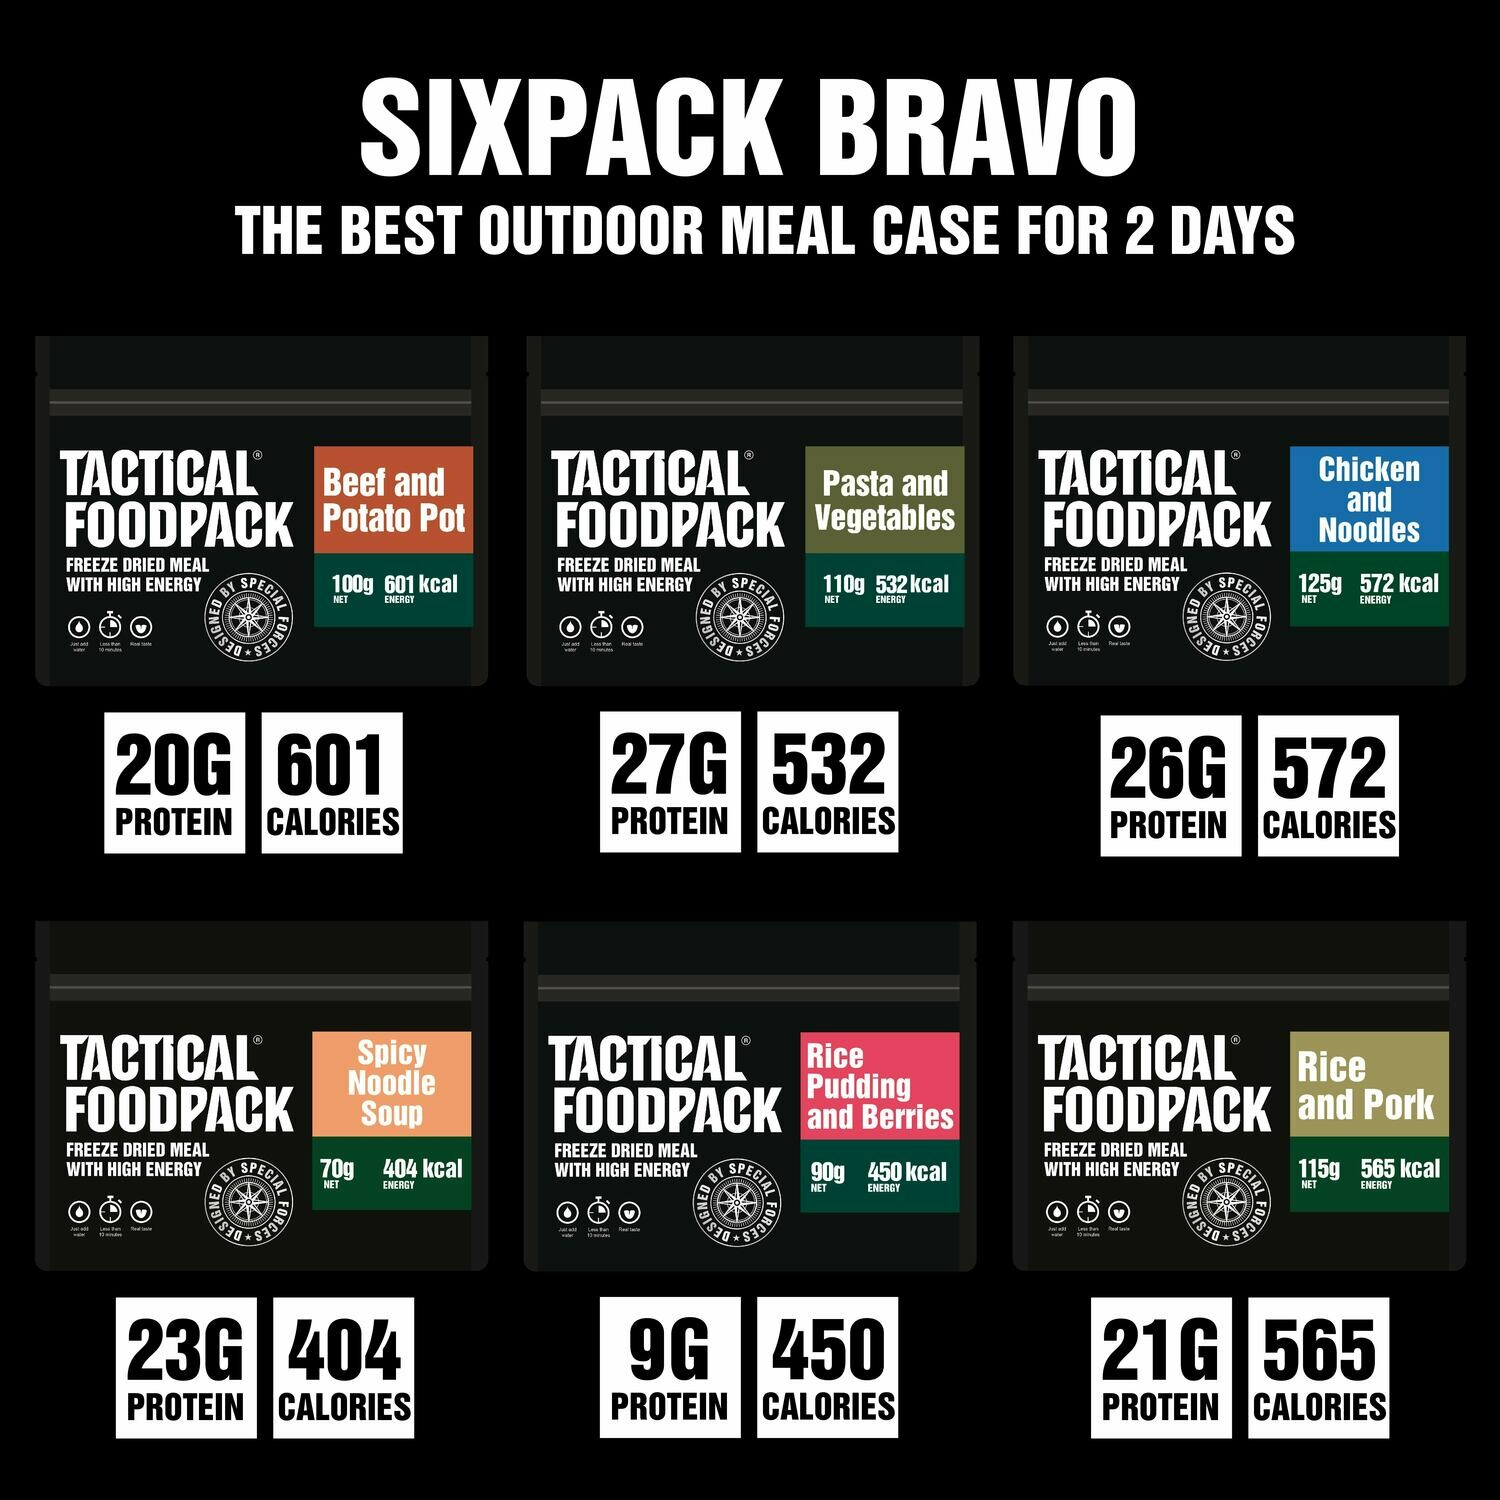 Tactical Foodpack - Six Pack Bravo